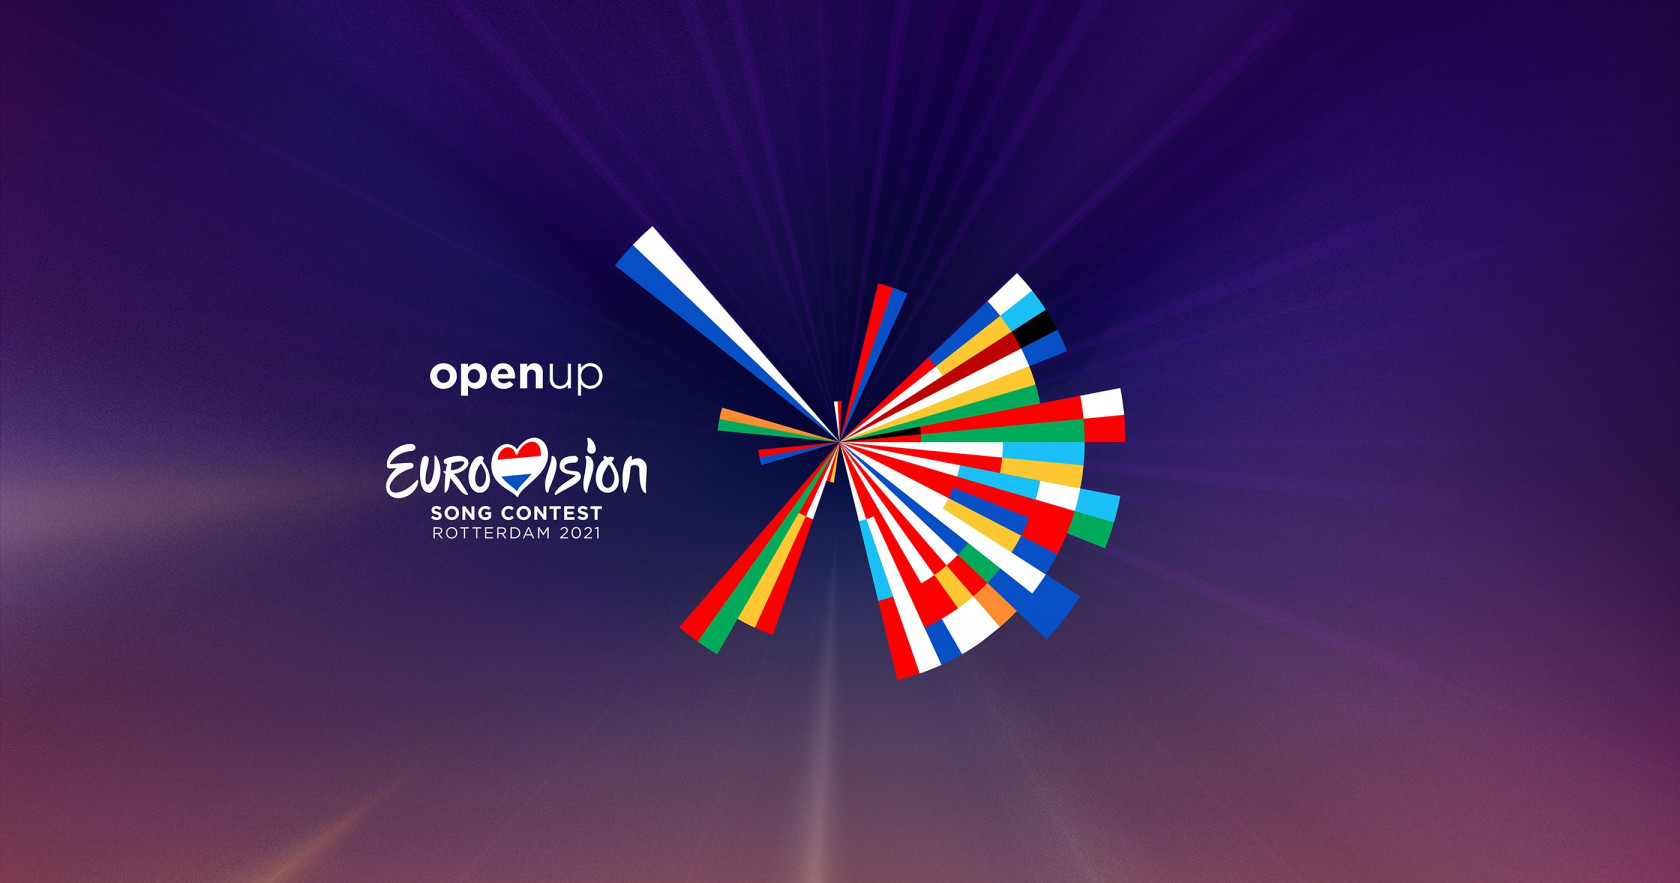 Betting eurovision song contest 2021 sports betting odds definition